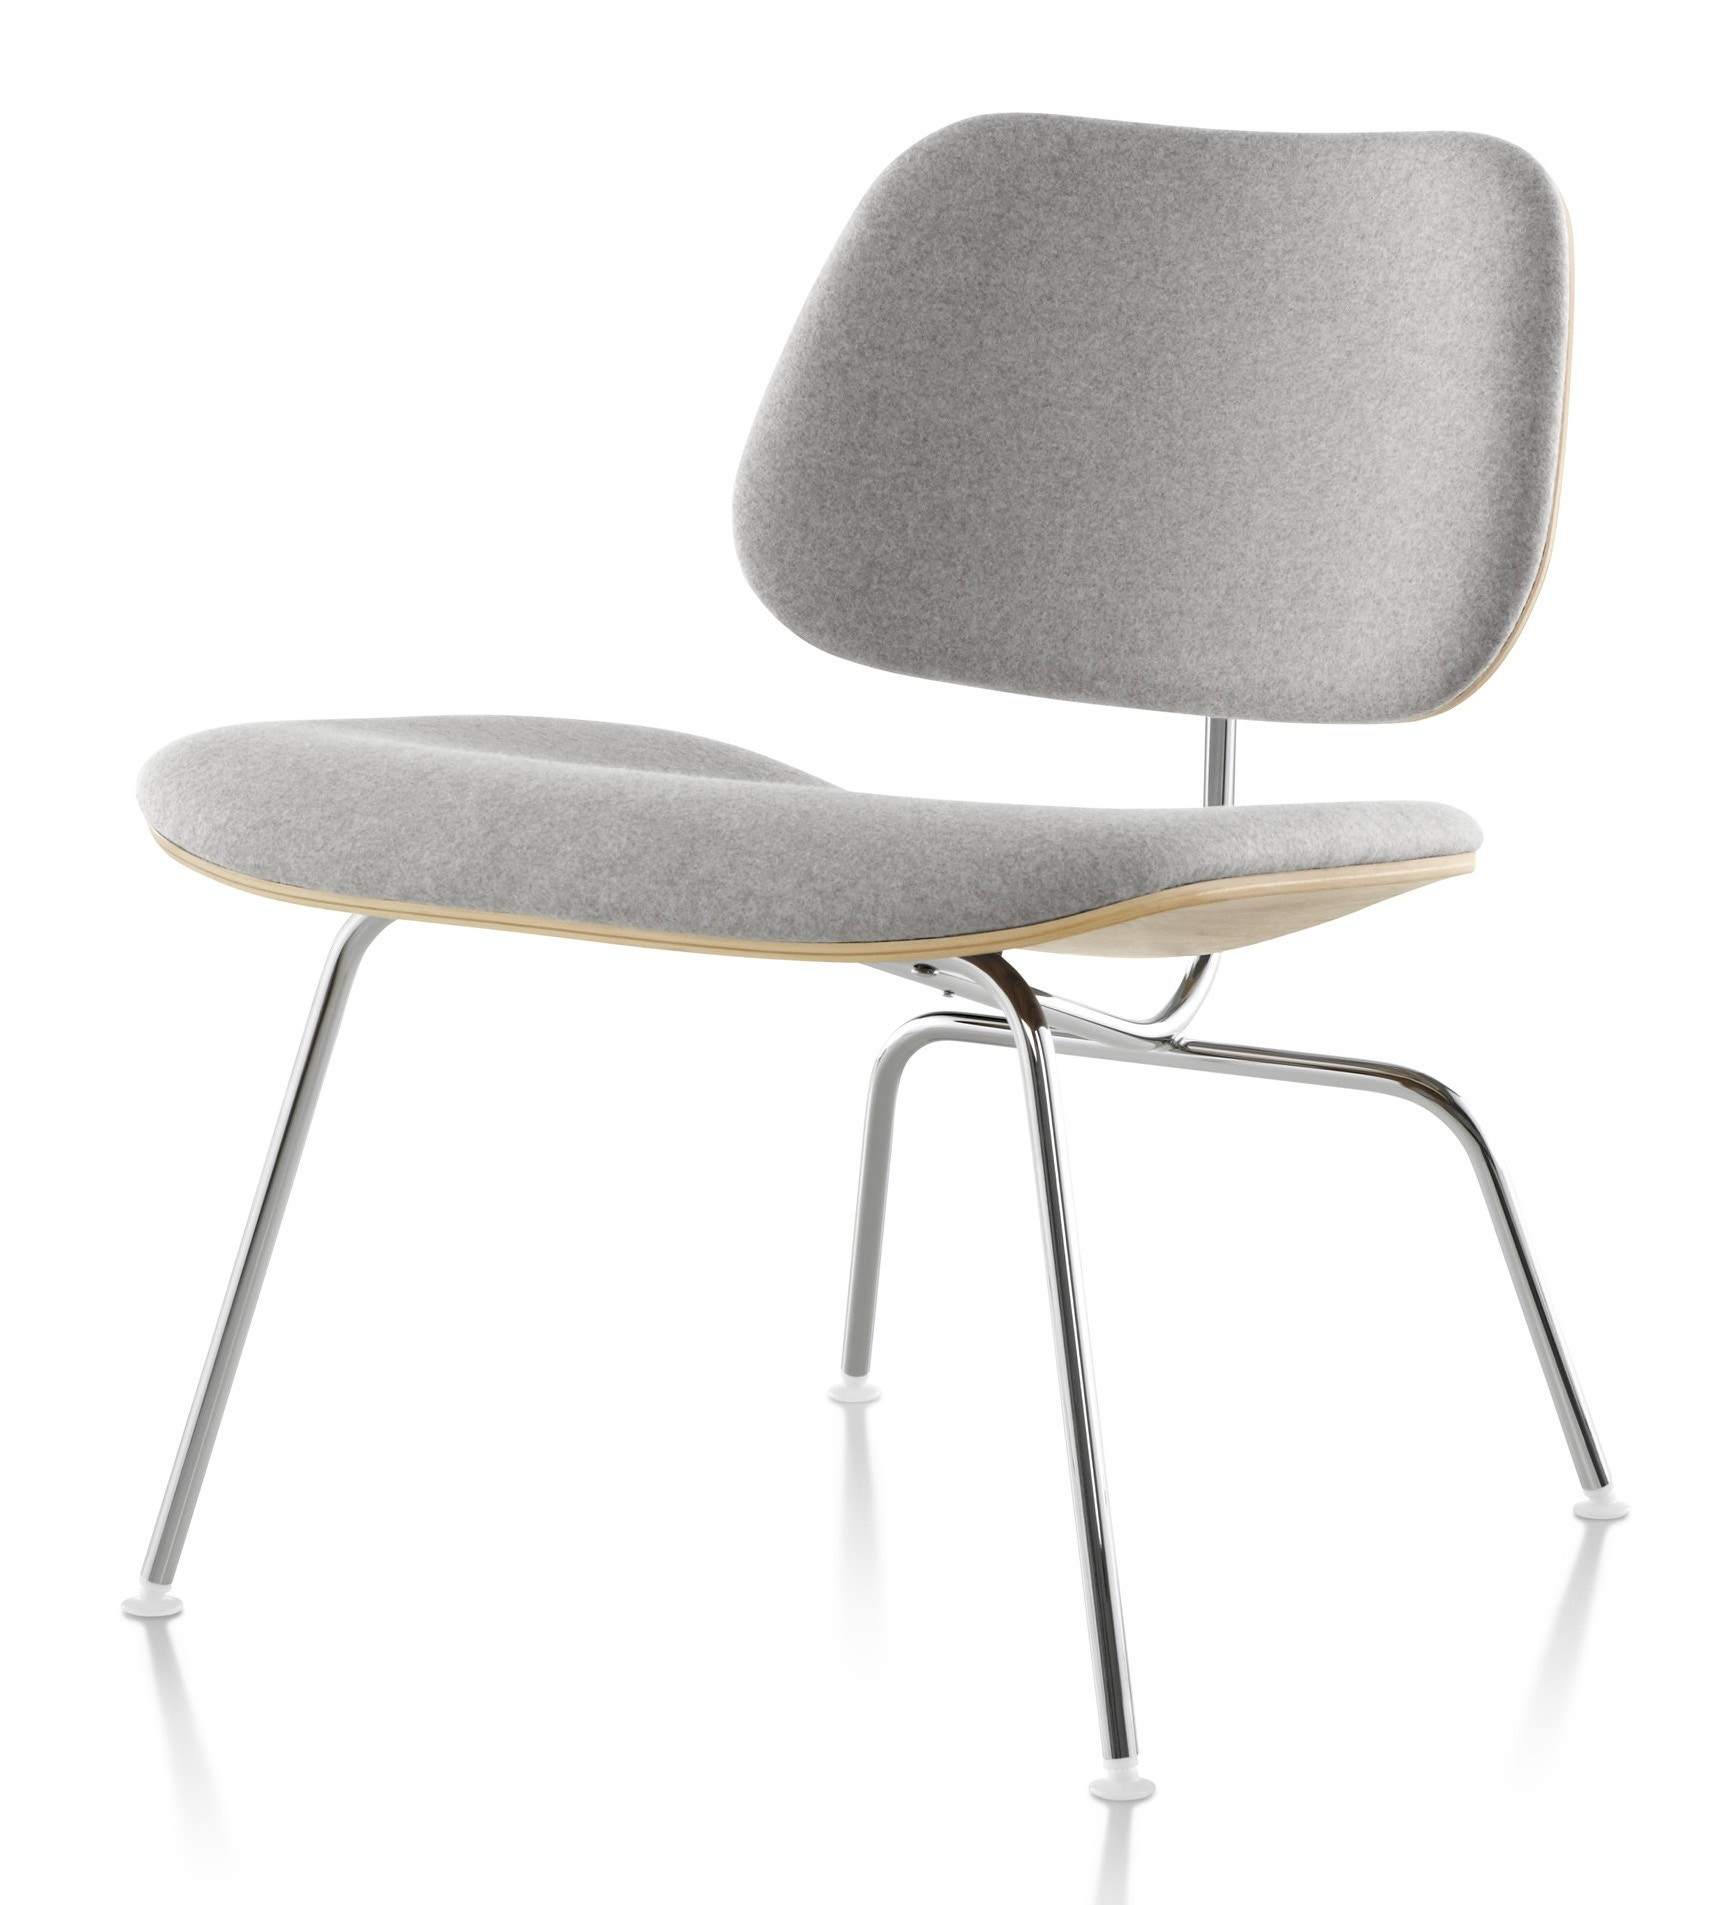 Herman Miller Eames® Molded Plywood Upholstered Lounge Chair - Metal Legs